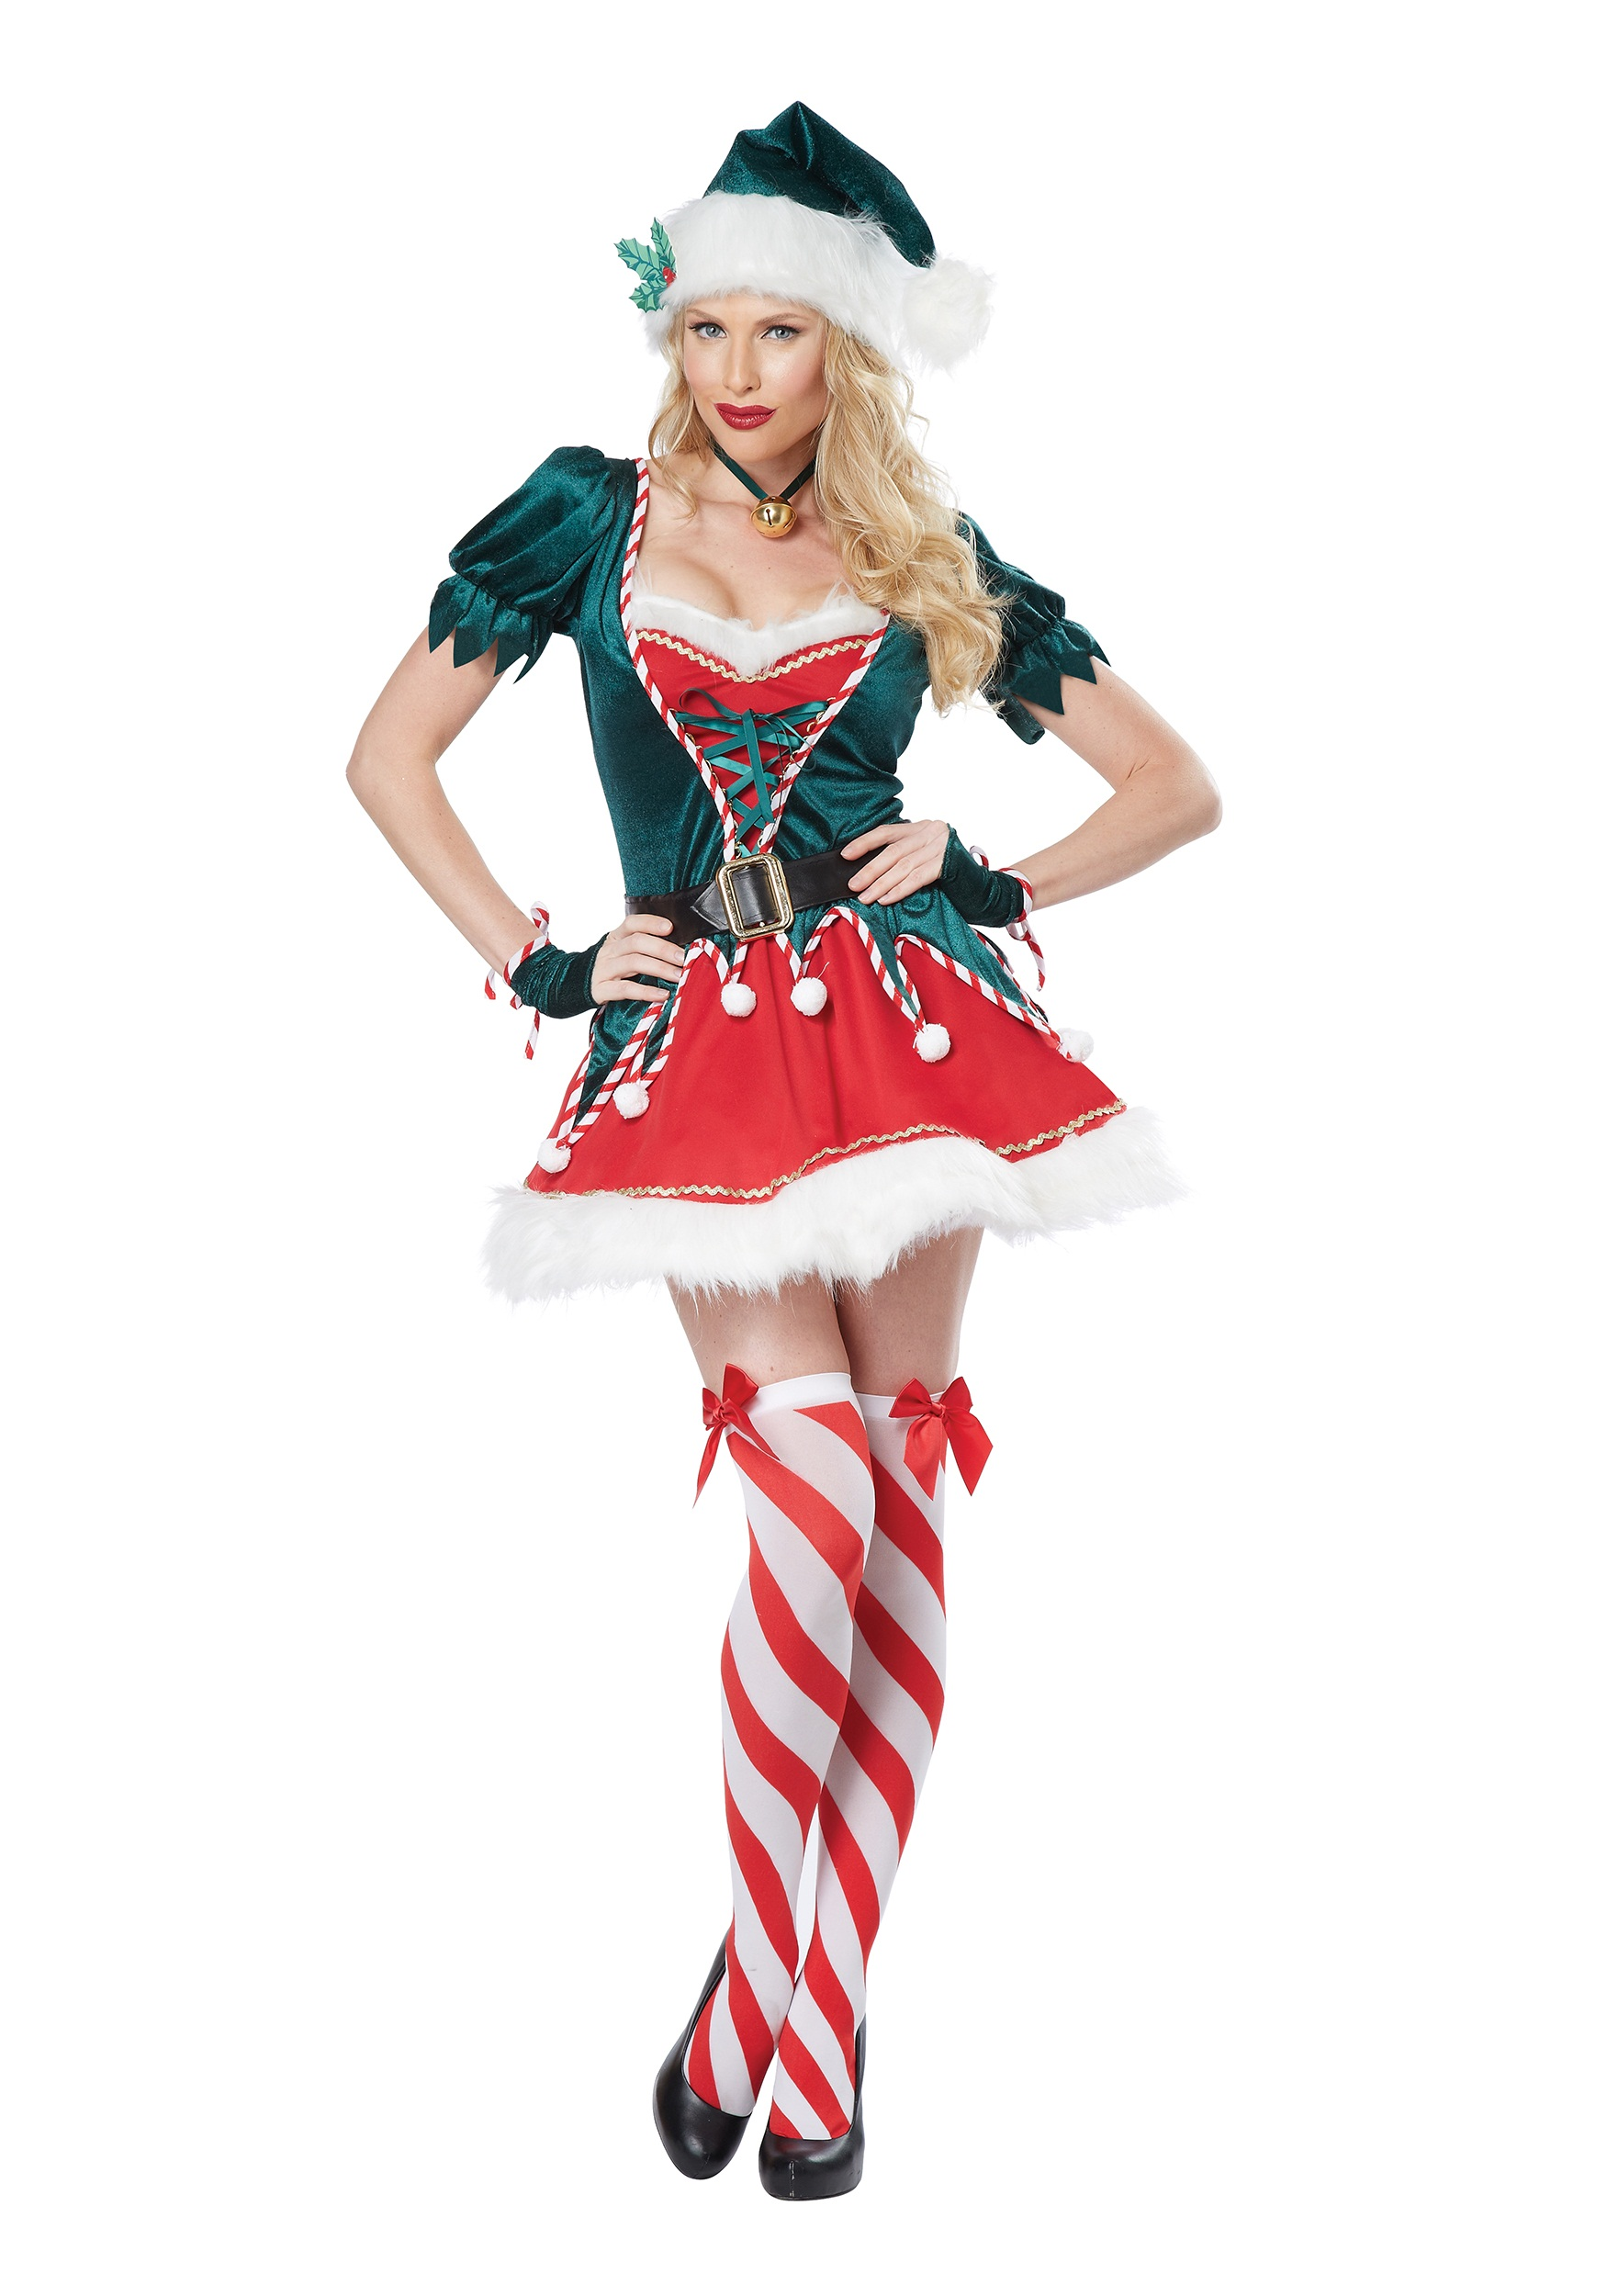 Adult Santau0027s Helper Costume. $49.99 · Deluxe Plus Size ...  sc 1 st  Halloween Costumes & Plus Size Womenu0027s Costumes - Plus Size Halloween Costumes for Women